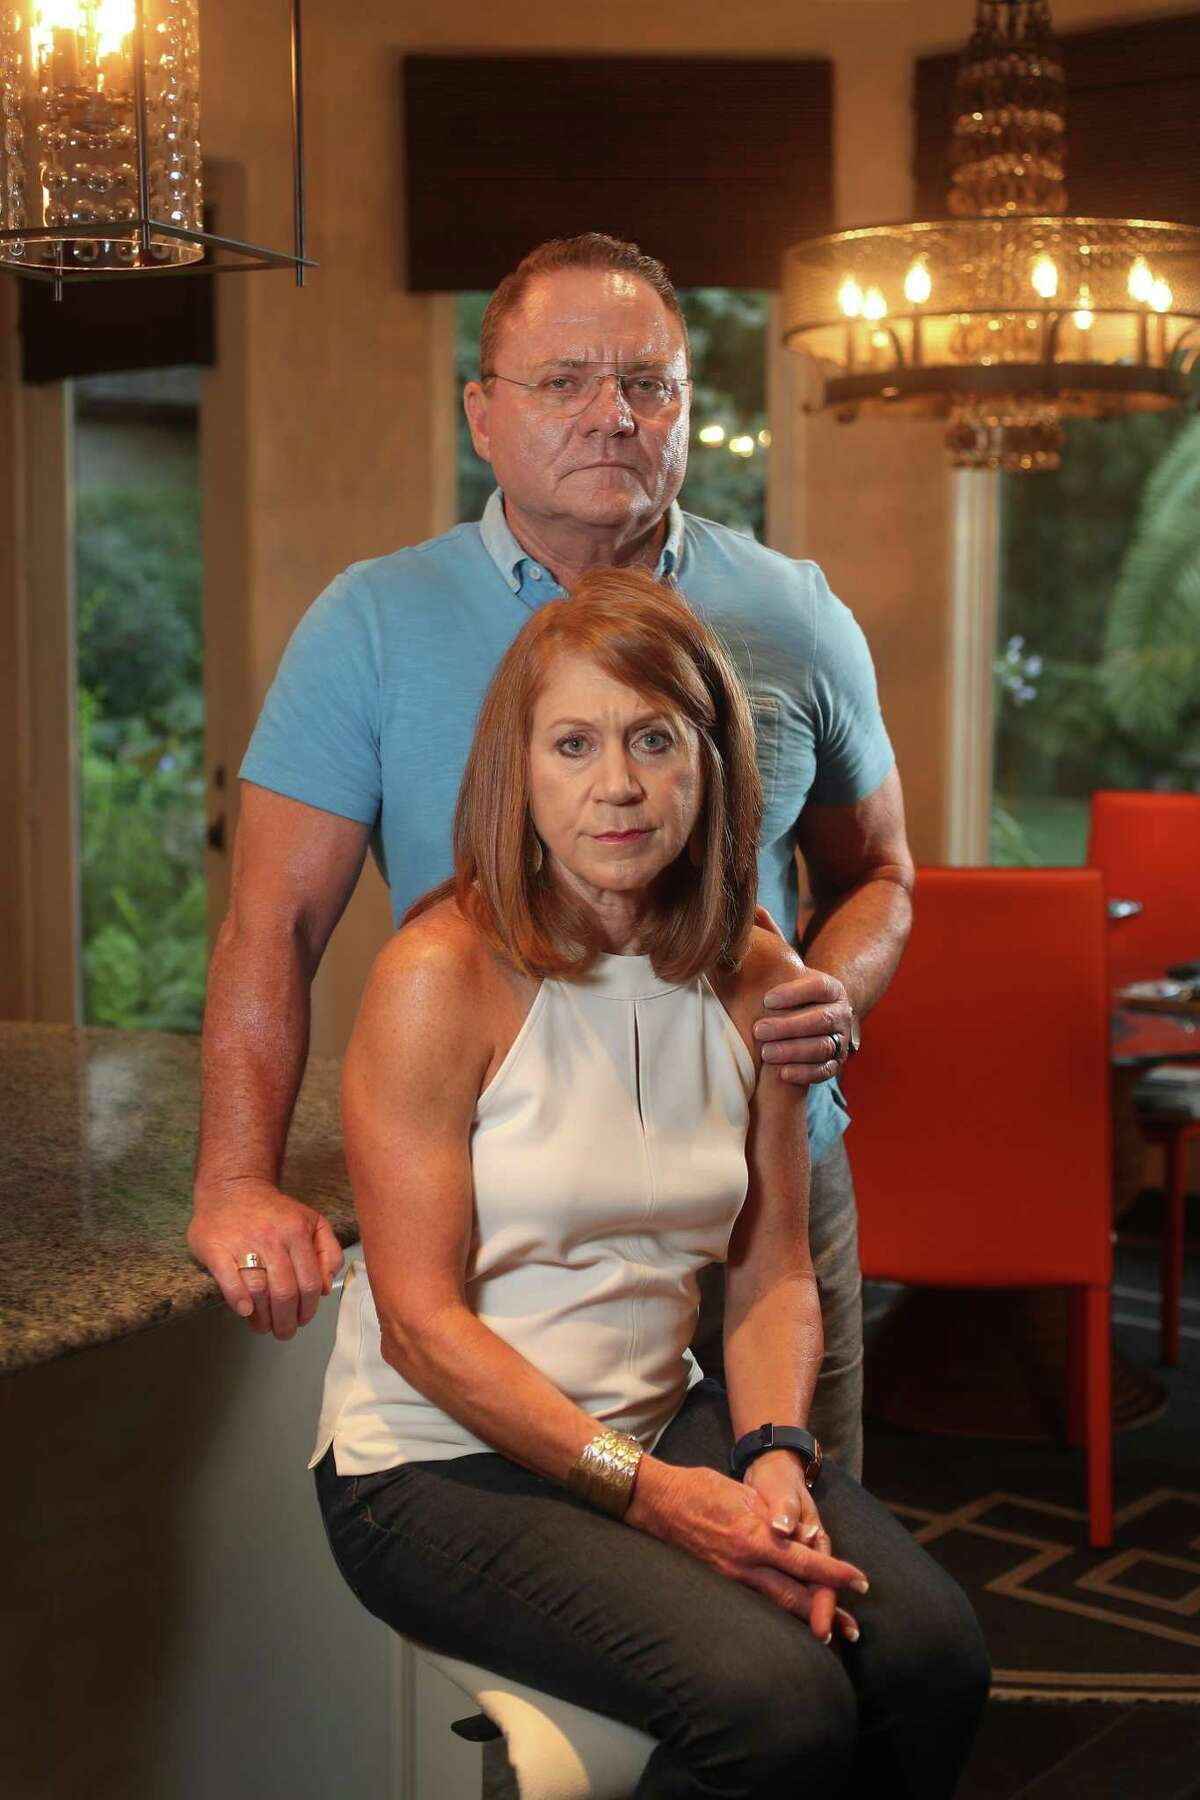 Jill Baine and her husband, James, are upset that their Aliera health plan denied payment for her cancer radiation treatment Wednesday, July 10, 2019, in The Woodlands.